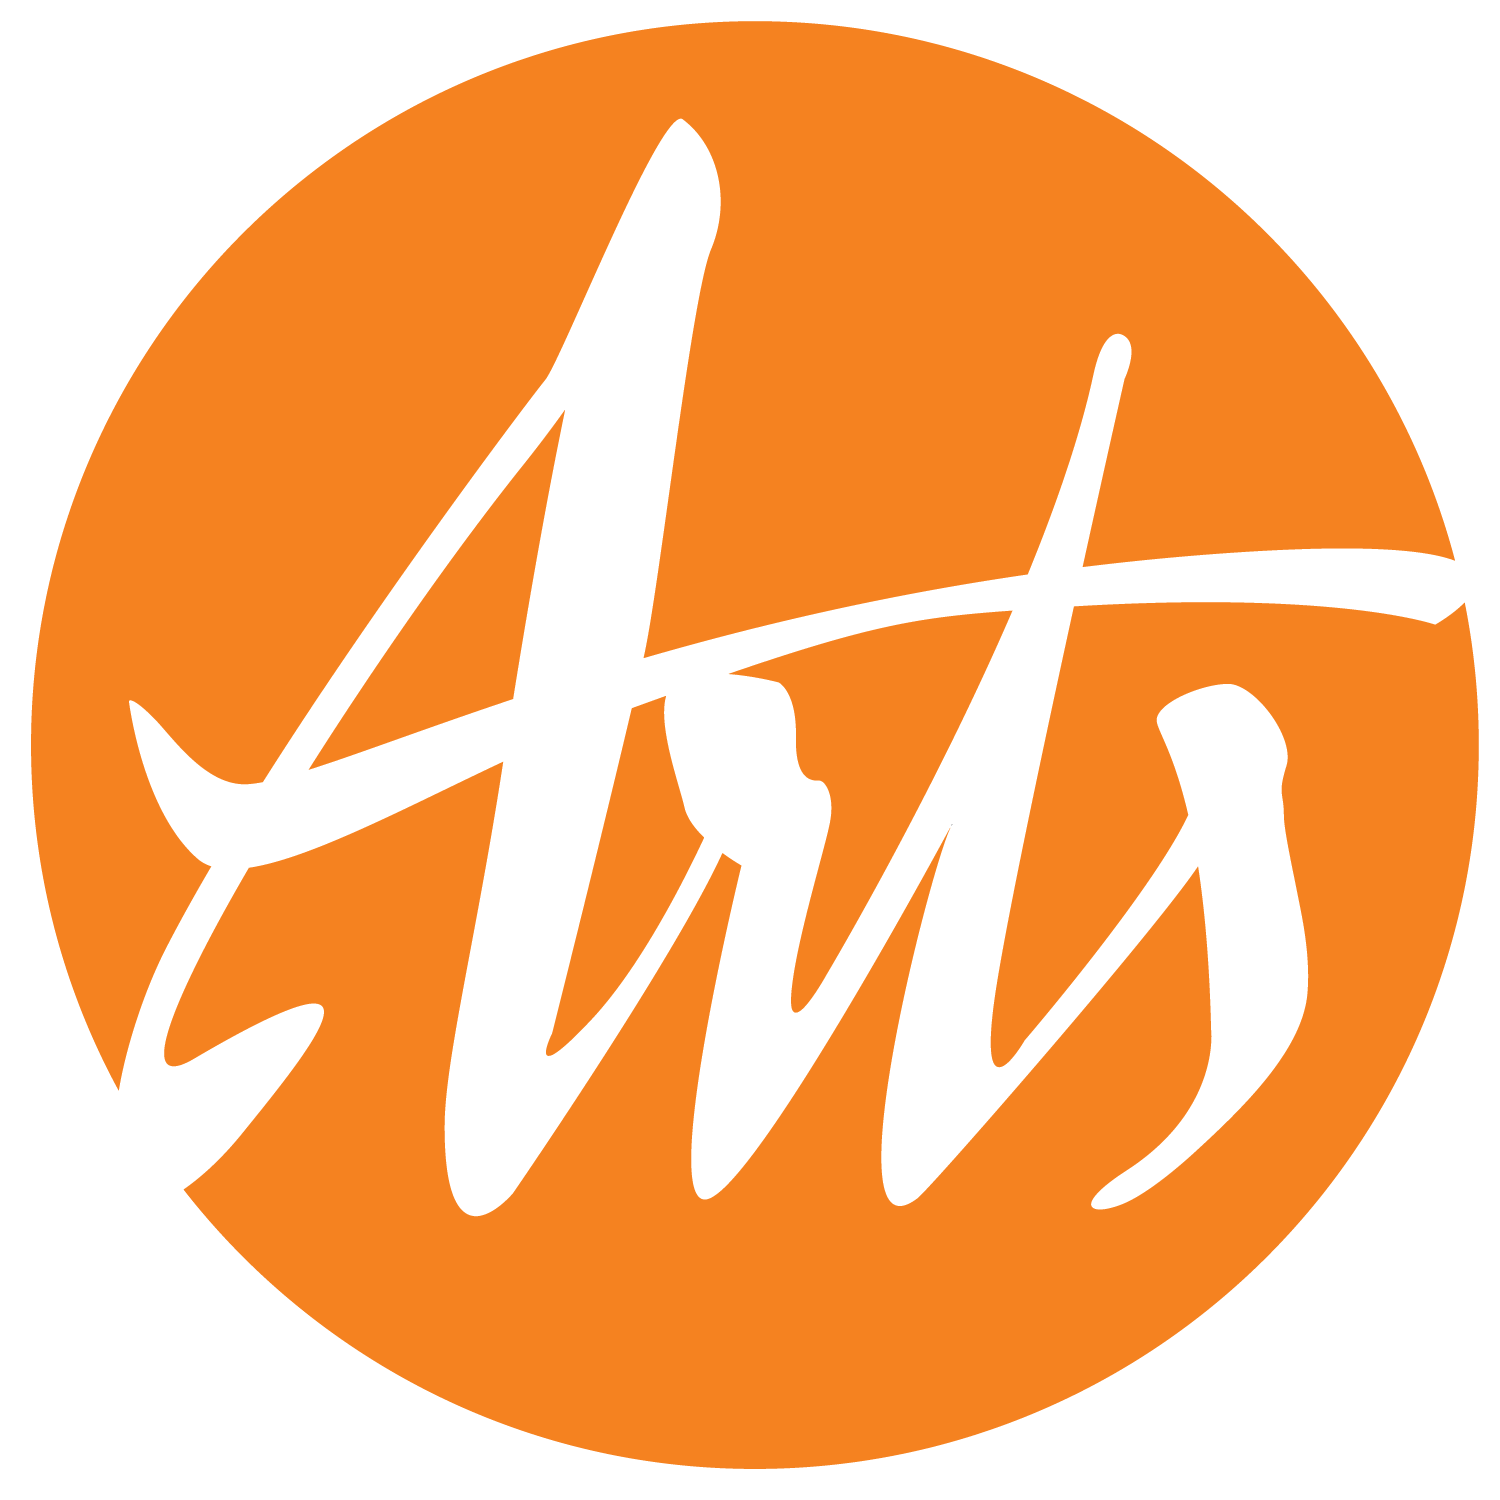 FFtA-Logo-Orange.png